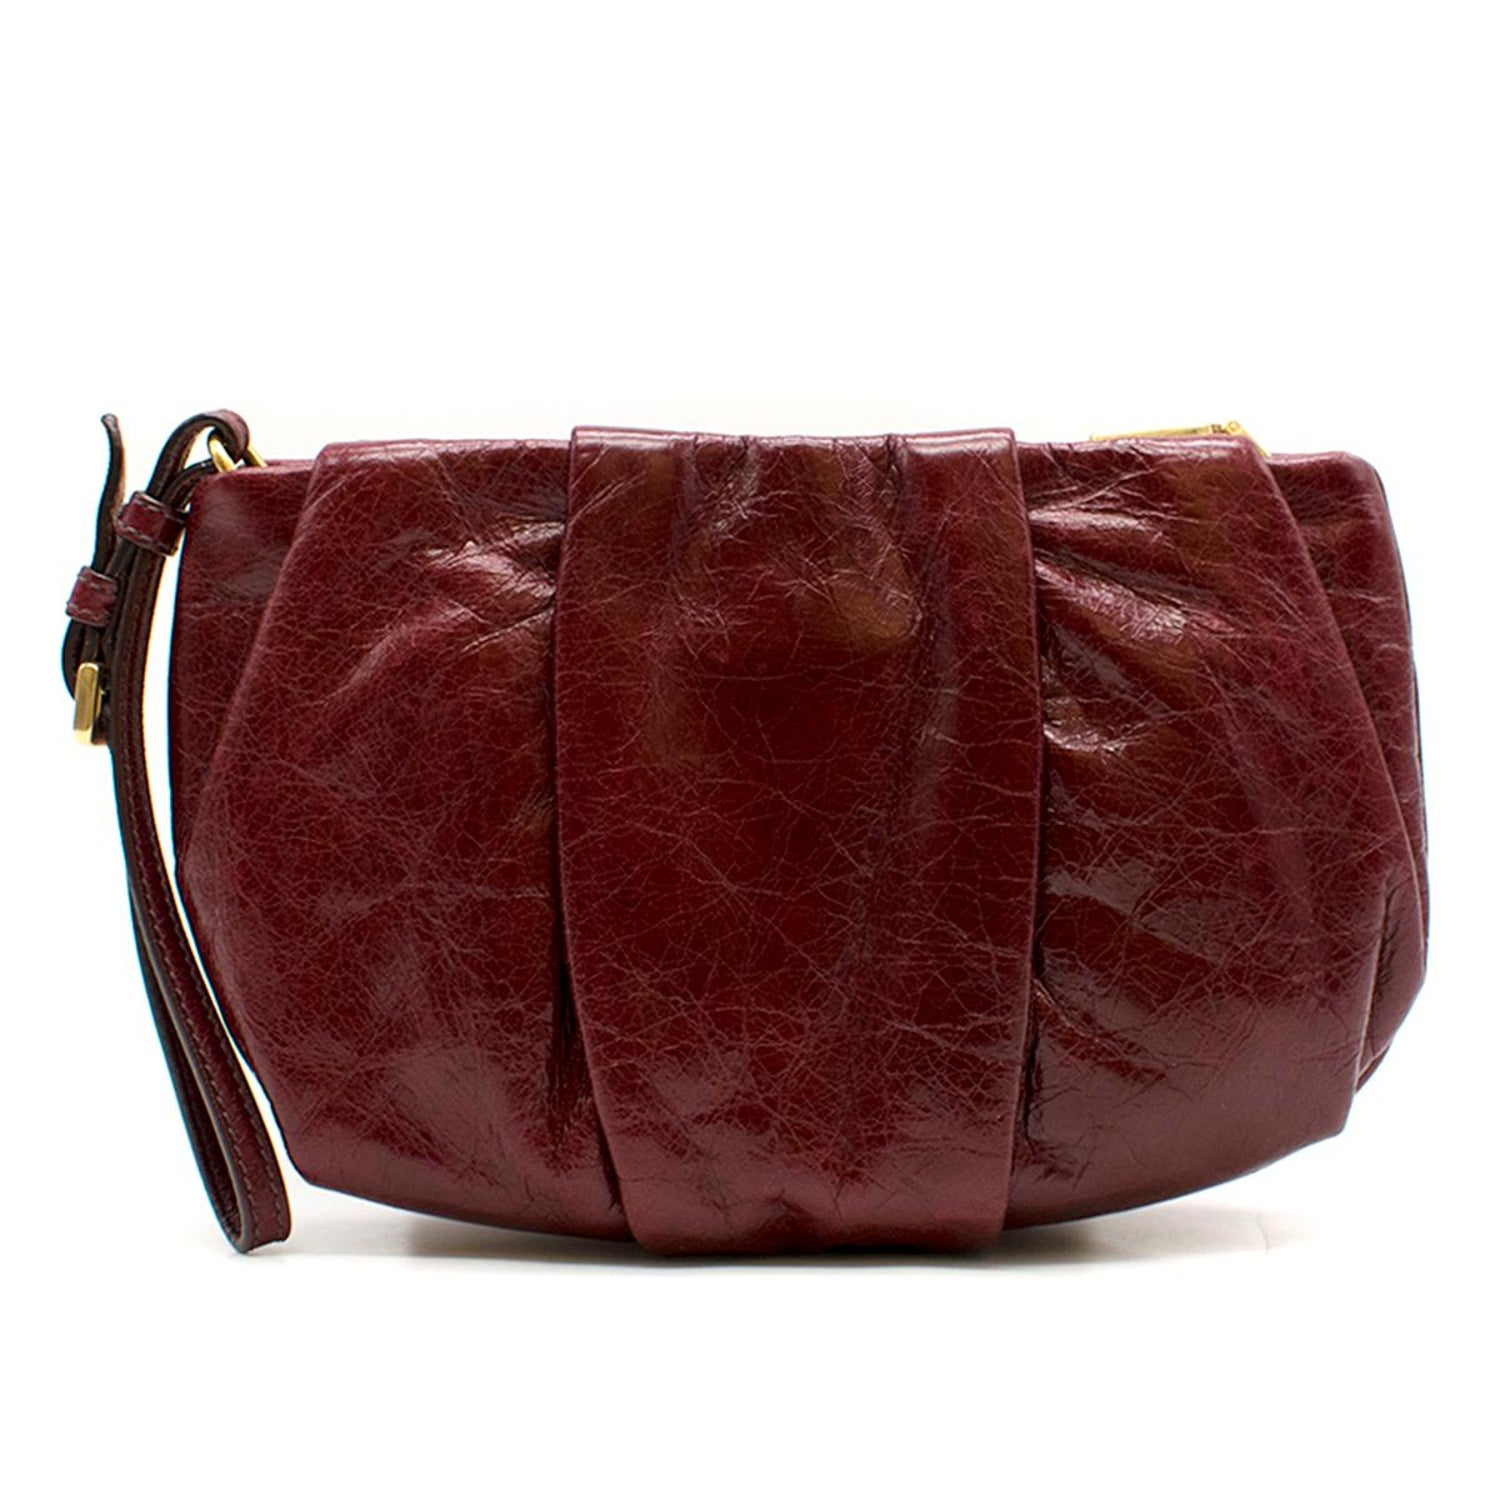 9fc2ef2b435e Prada burgundy leather wristlet clutch at 1stdibs